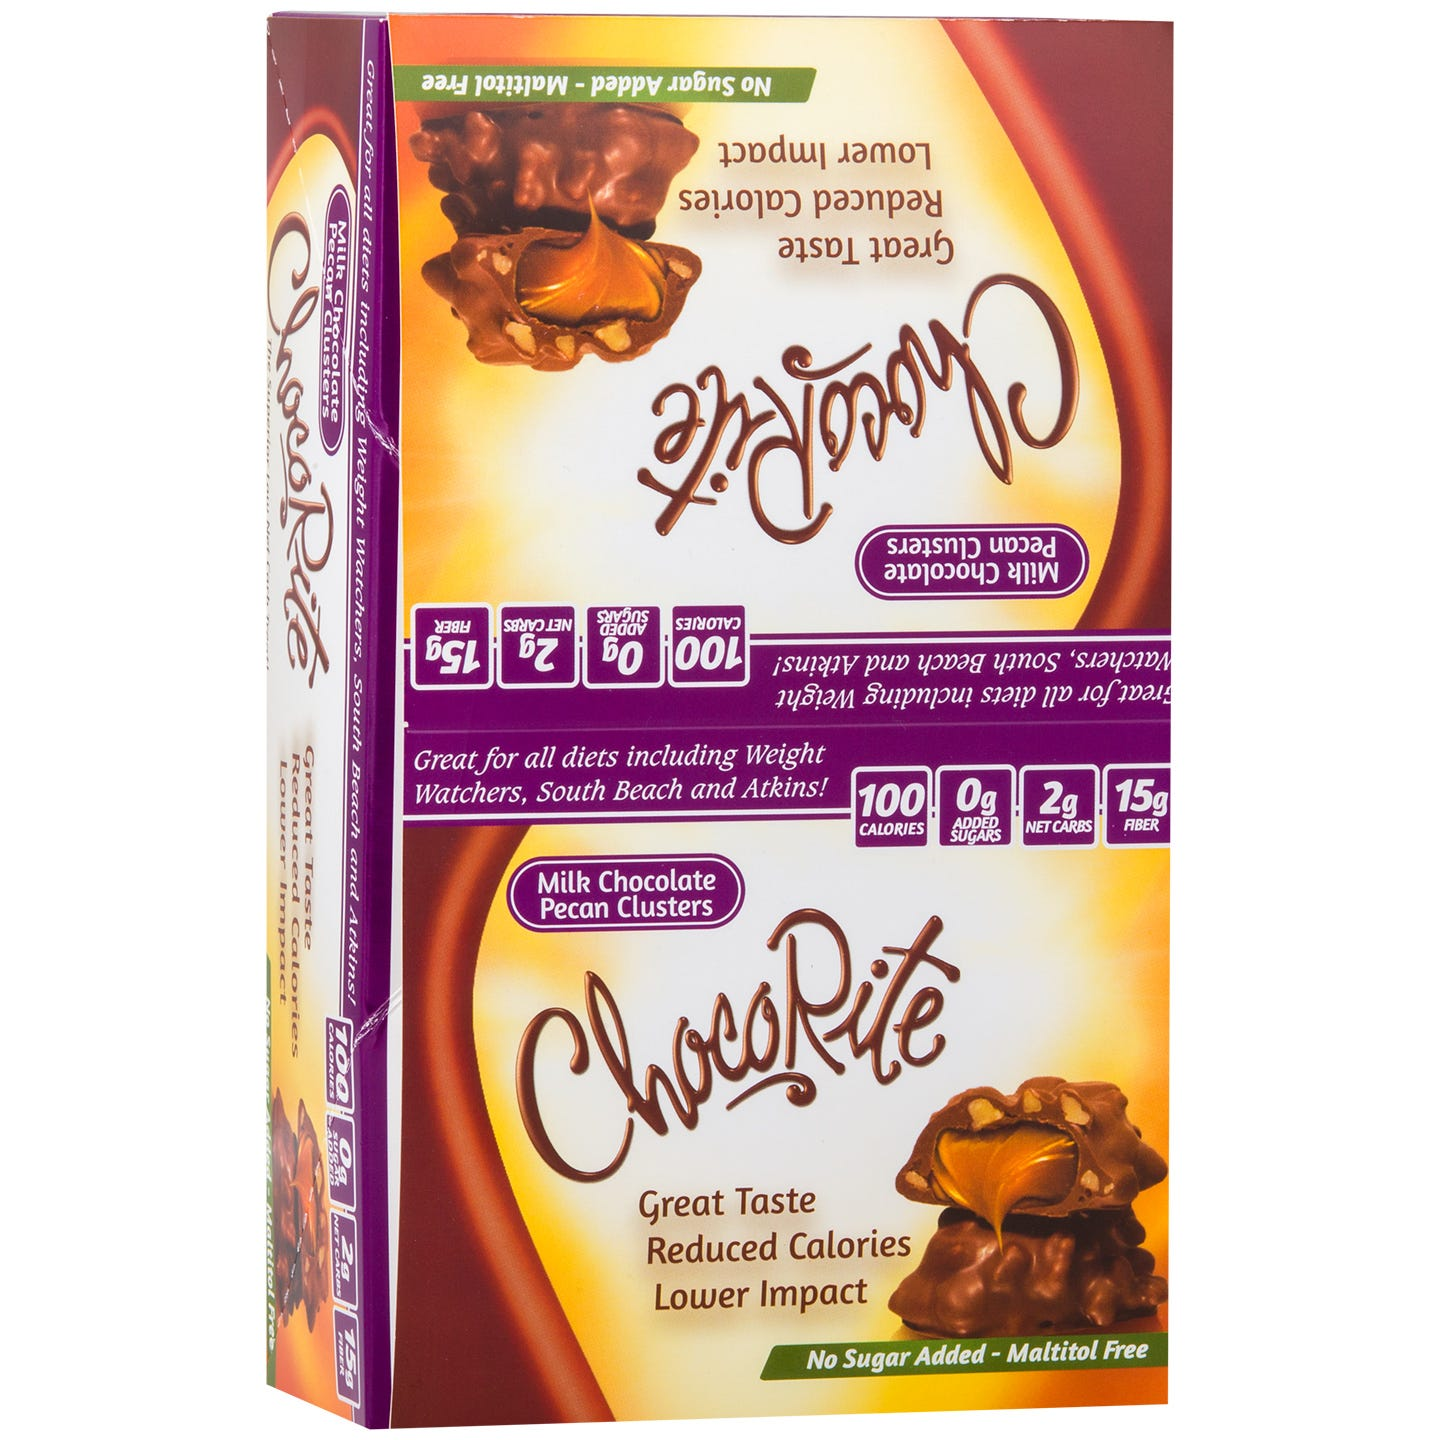 ChocoRite Chocolate Bars Pecan Cluster (16 ct) - HealthSmart Foods - Rapid Diet Weight Loss Products Shop